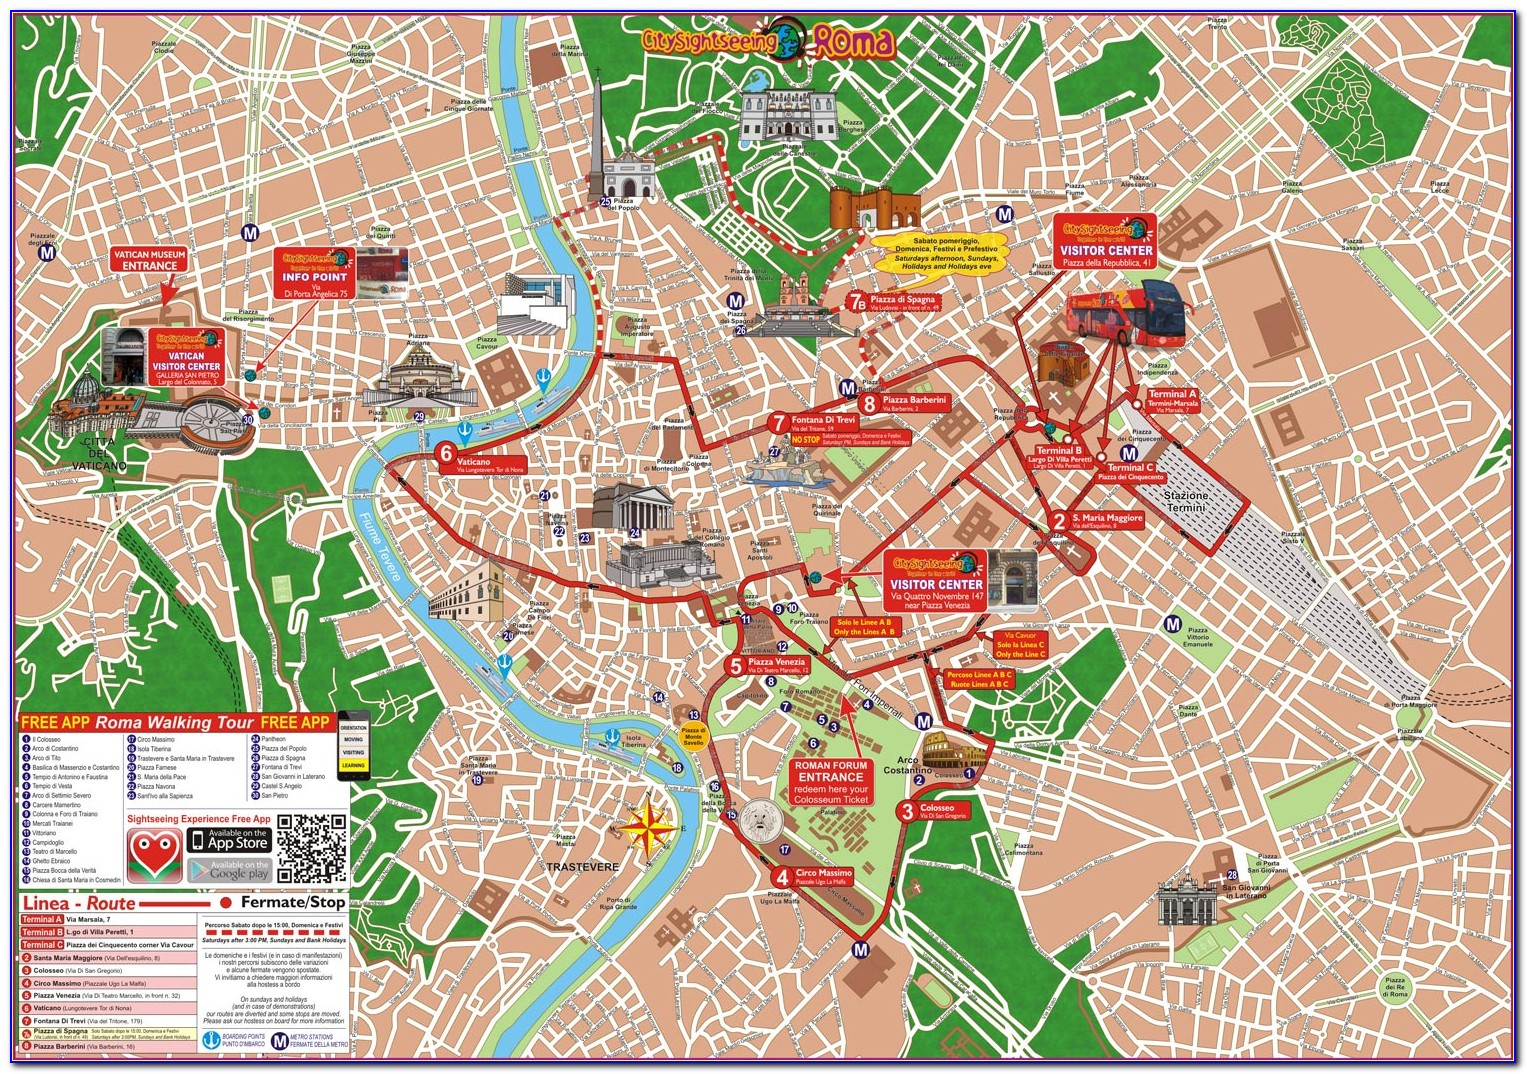 Florence Italy Hop On Hop Off Bus Map